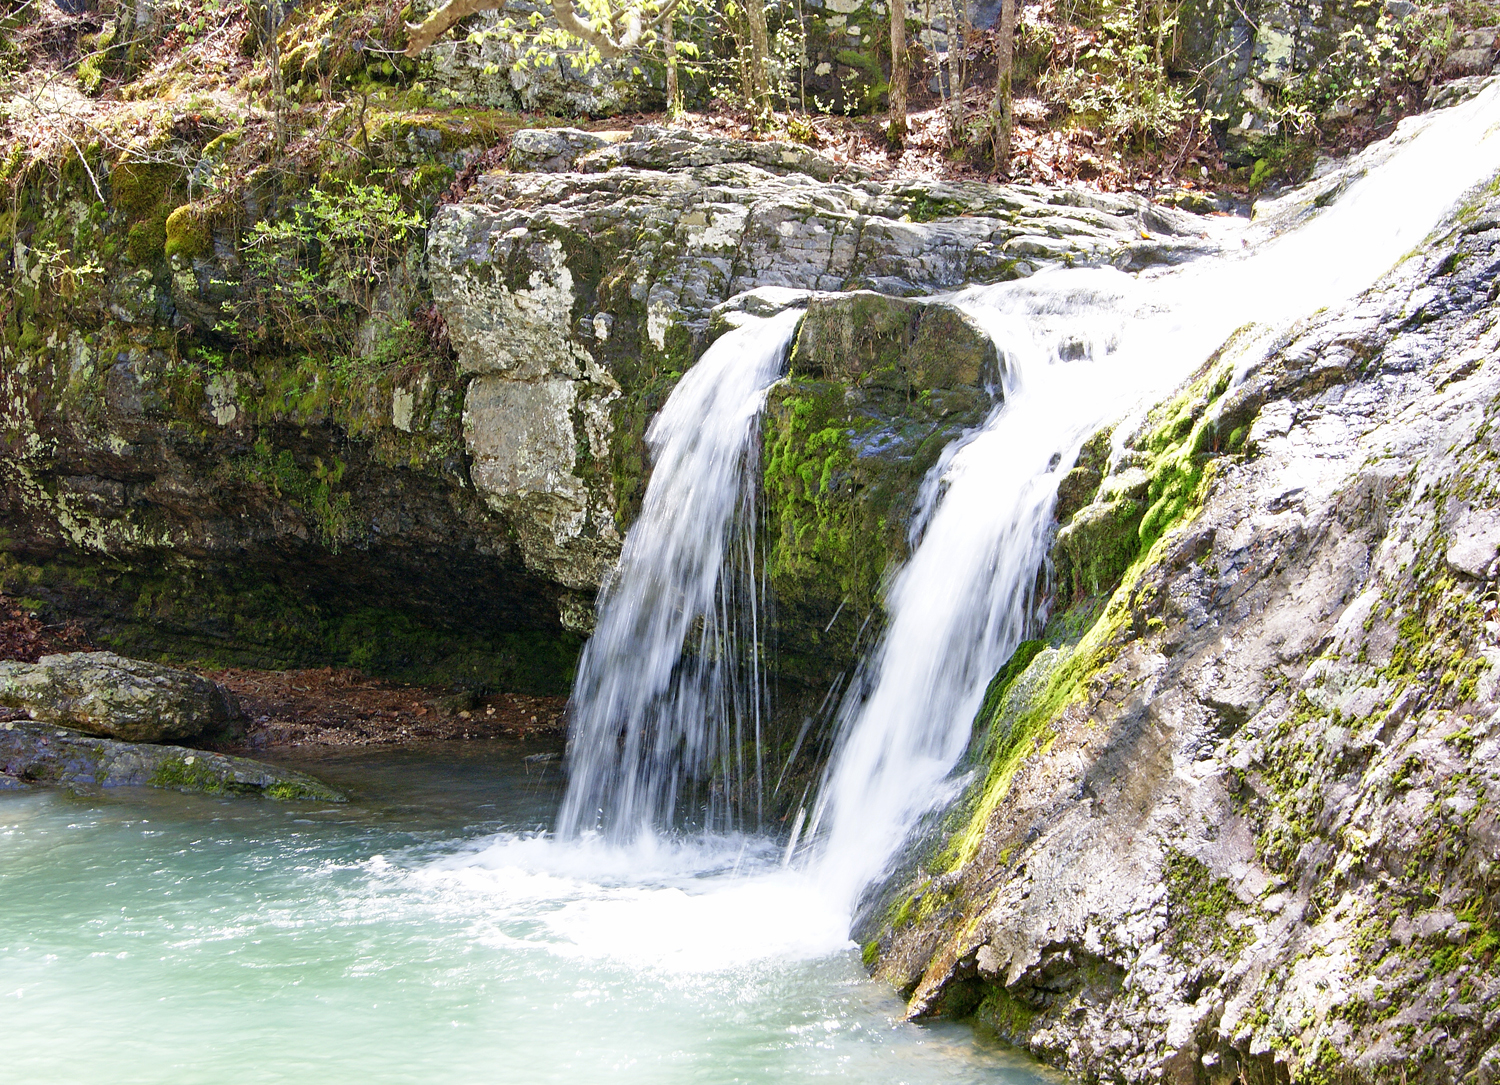 Sitting and listening to Falls Creek Falls is a great way to spend an early spring day.